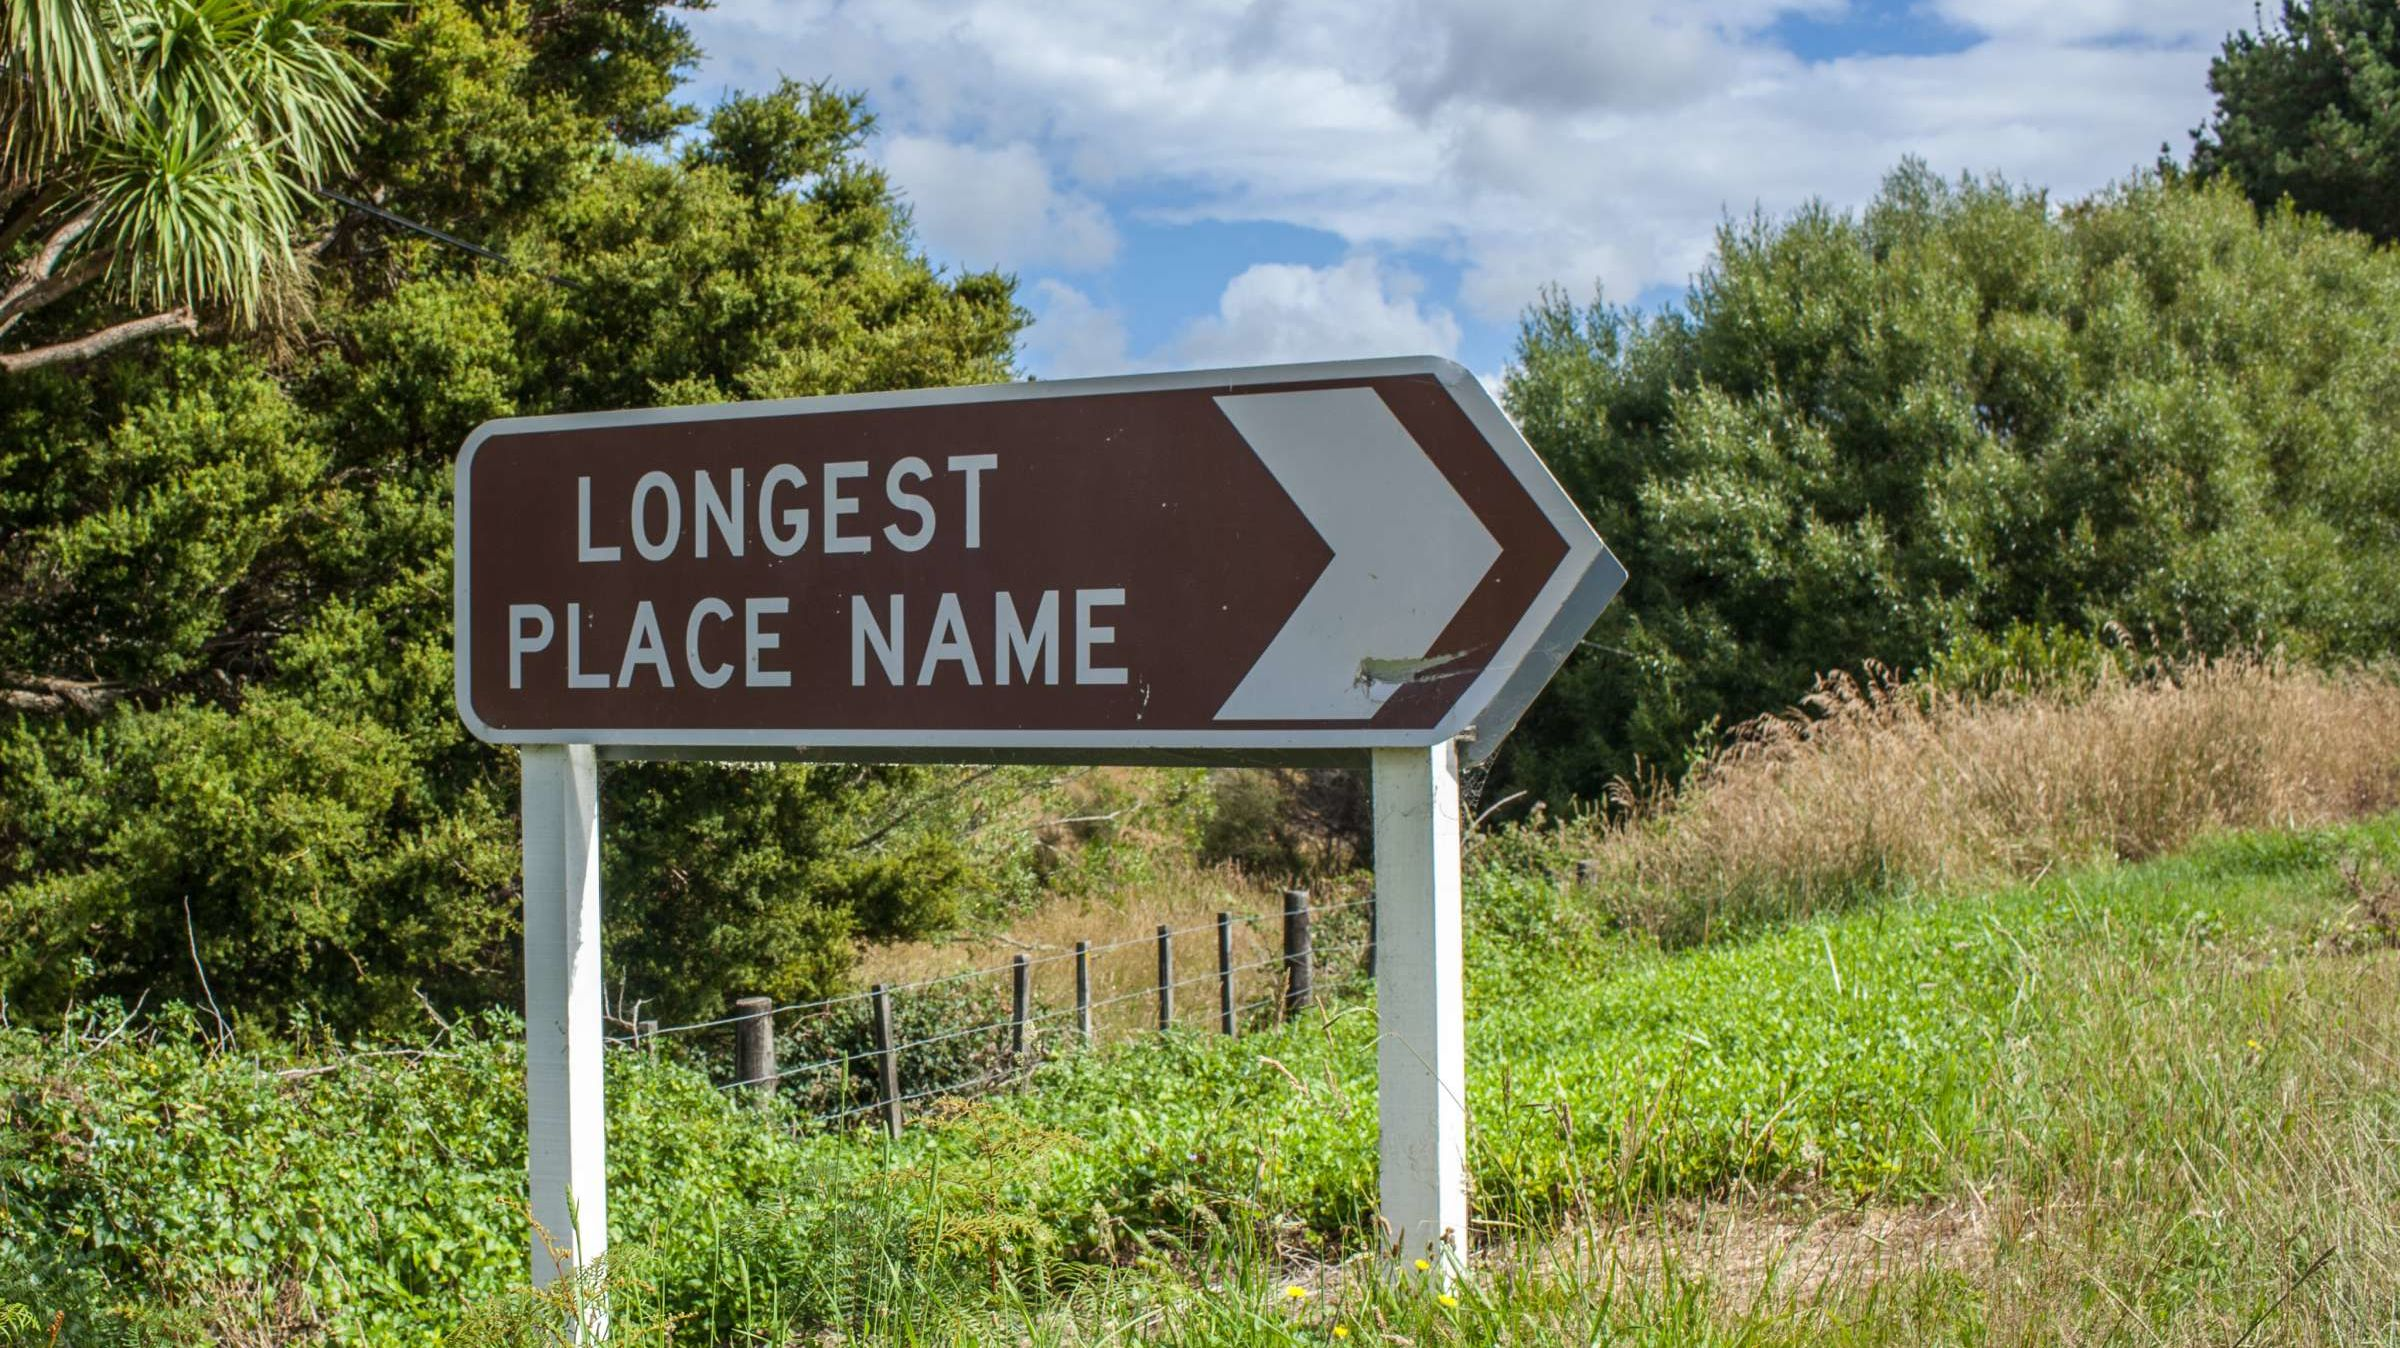 The 10 Longest Place Names in the World